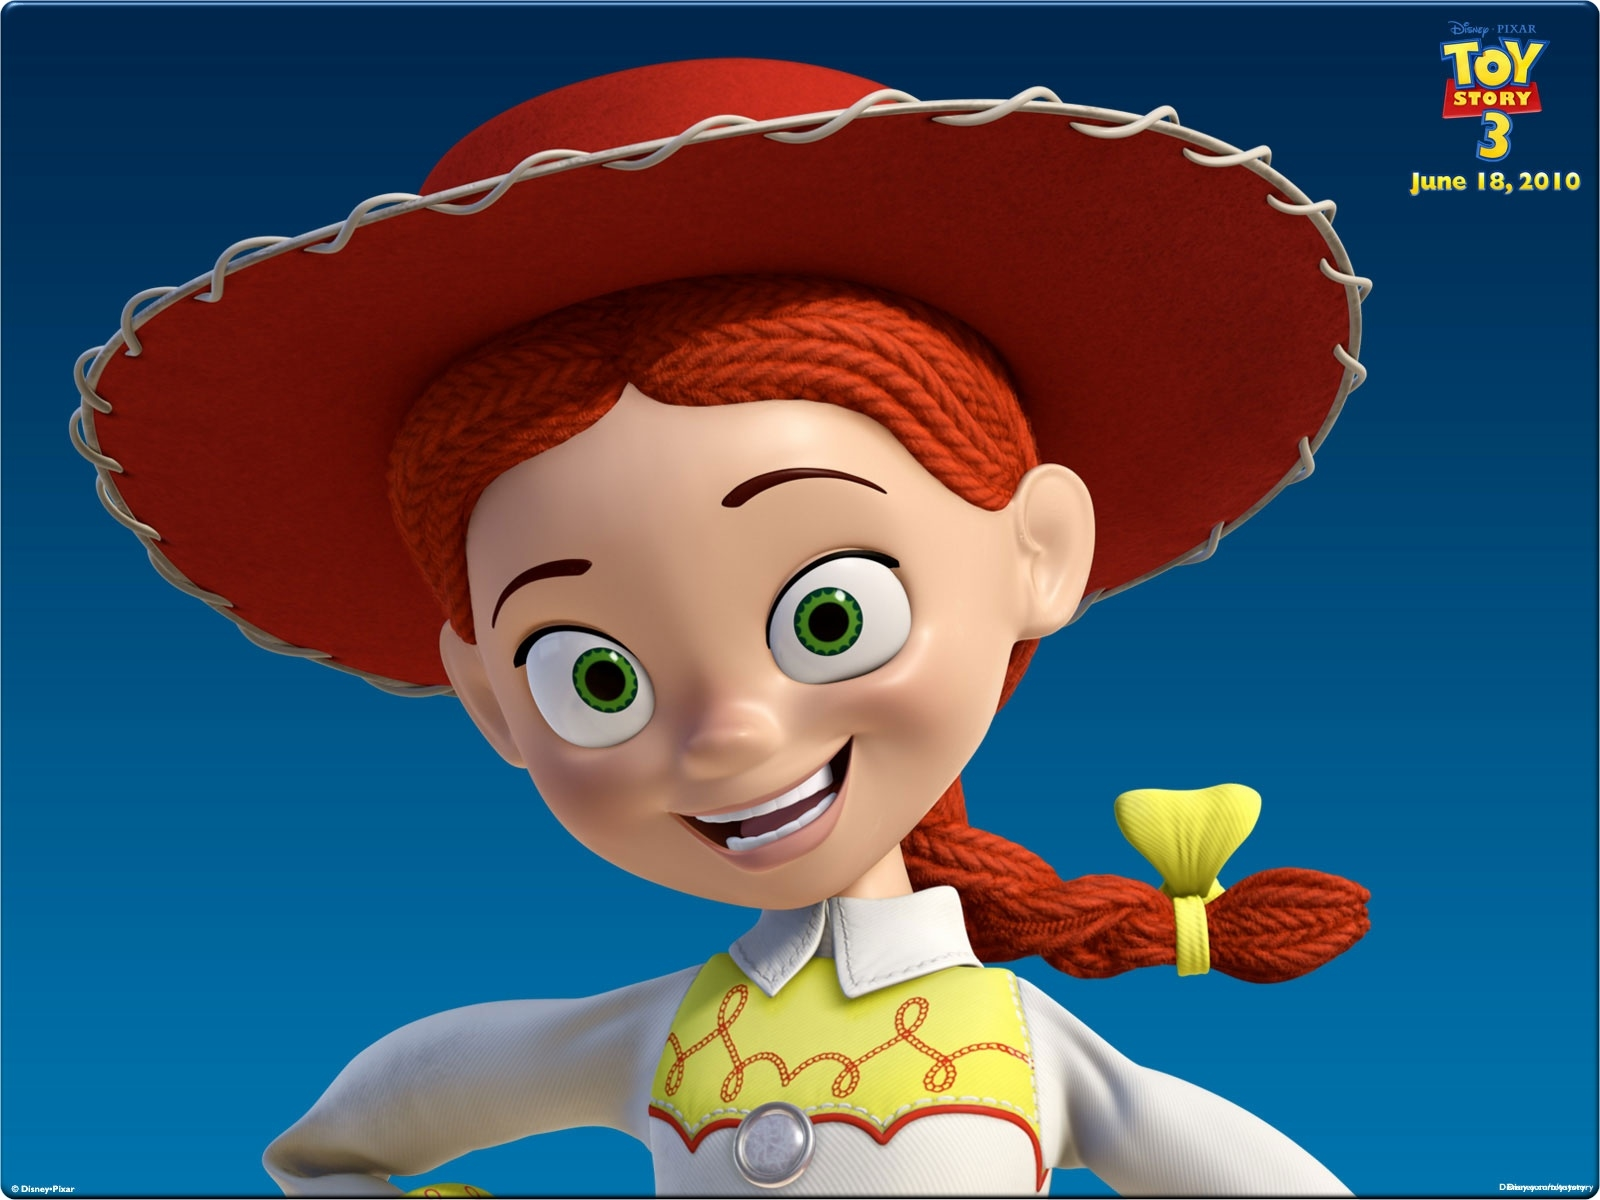 toystory 1 2 3 jessie hd free wallpaper desktop background